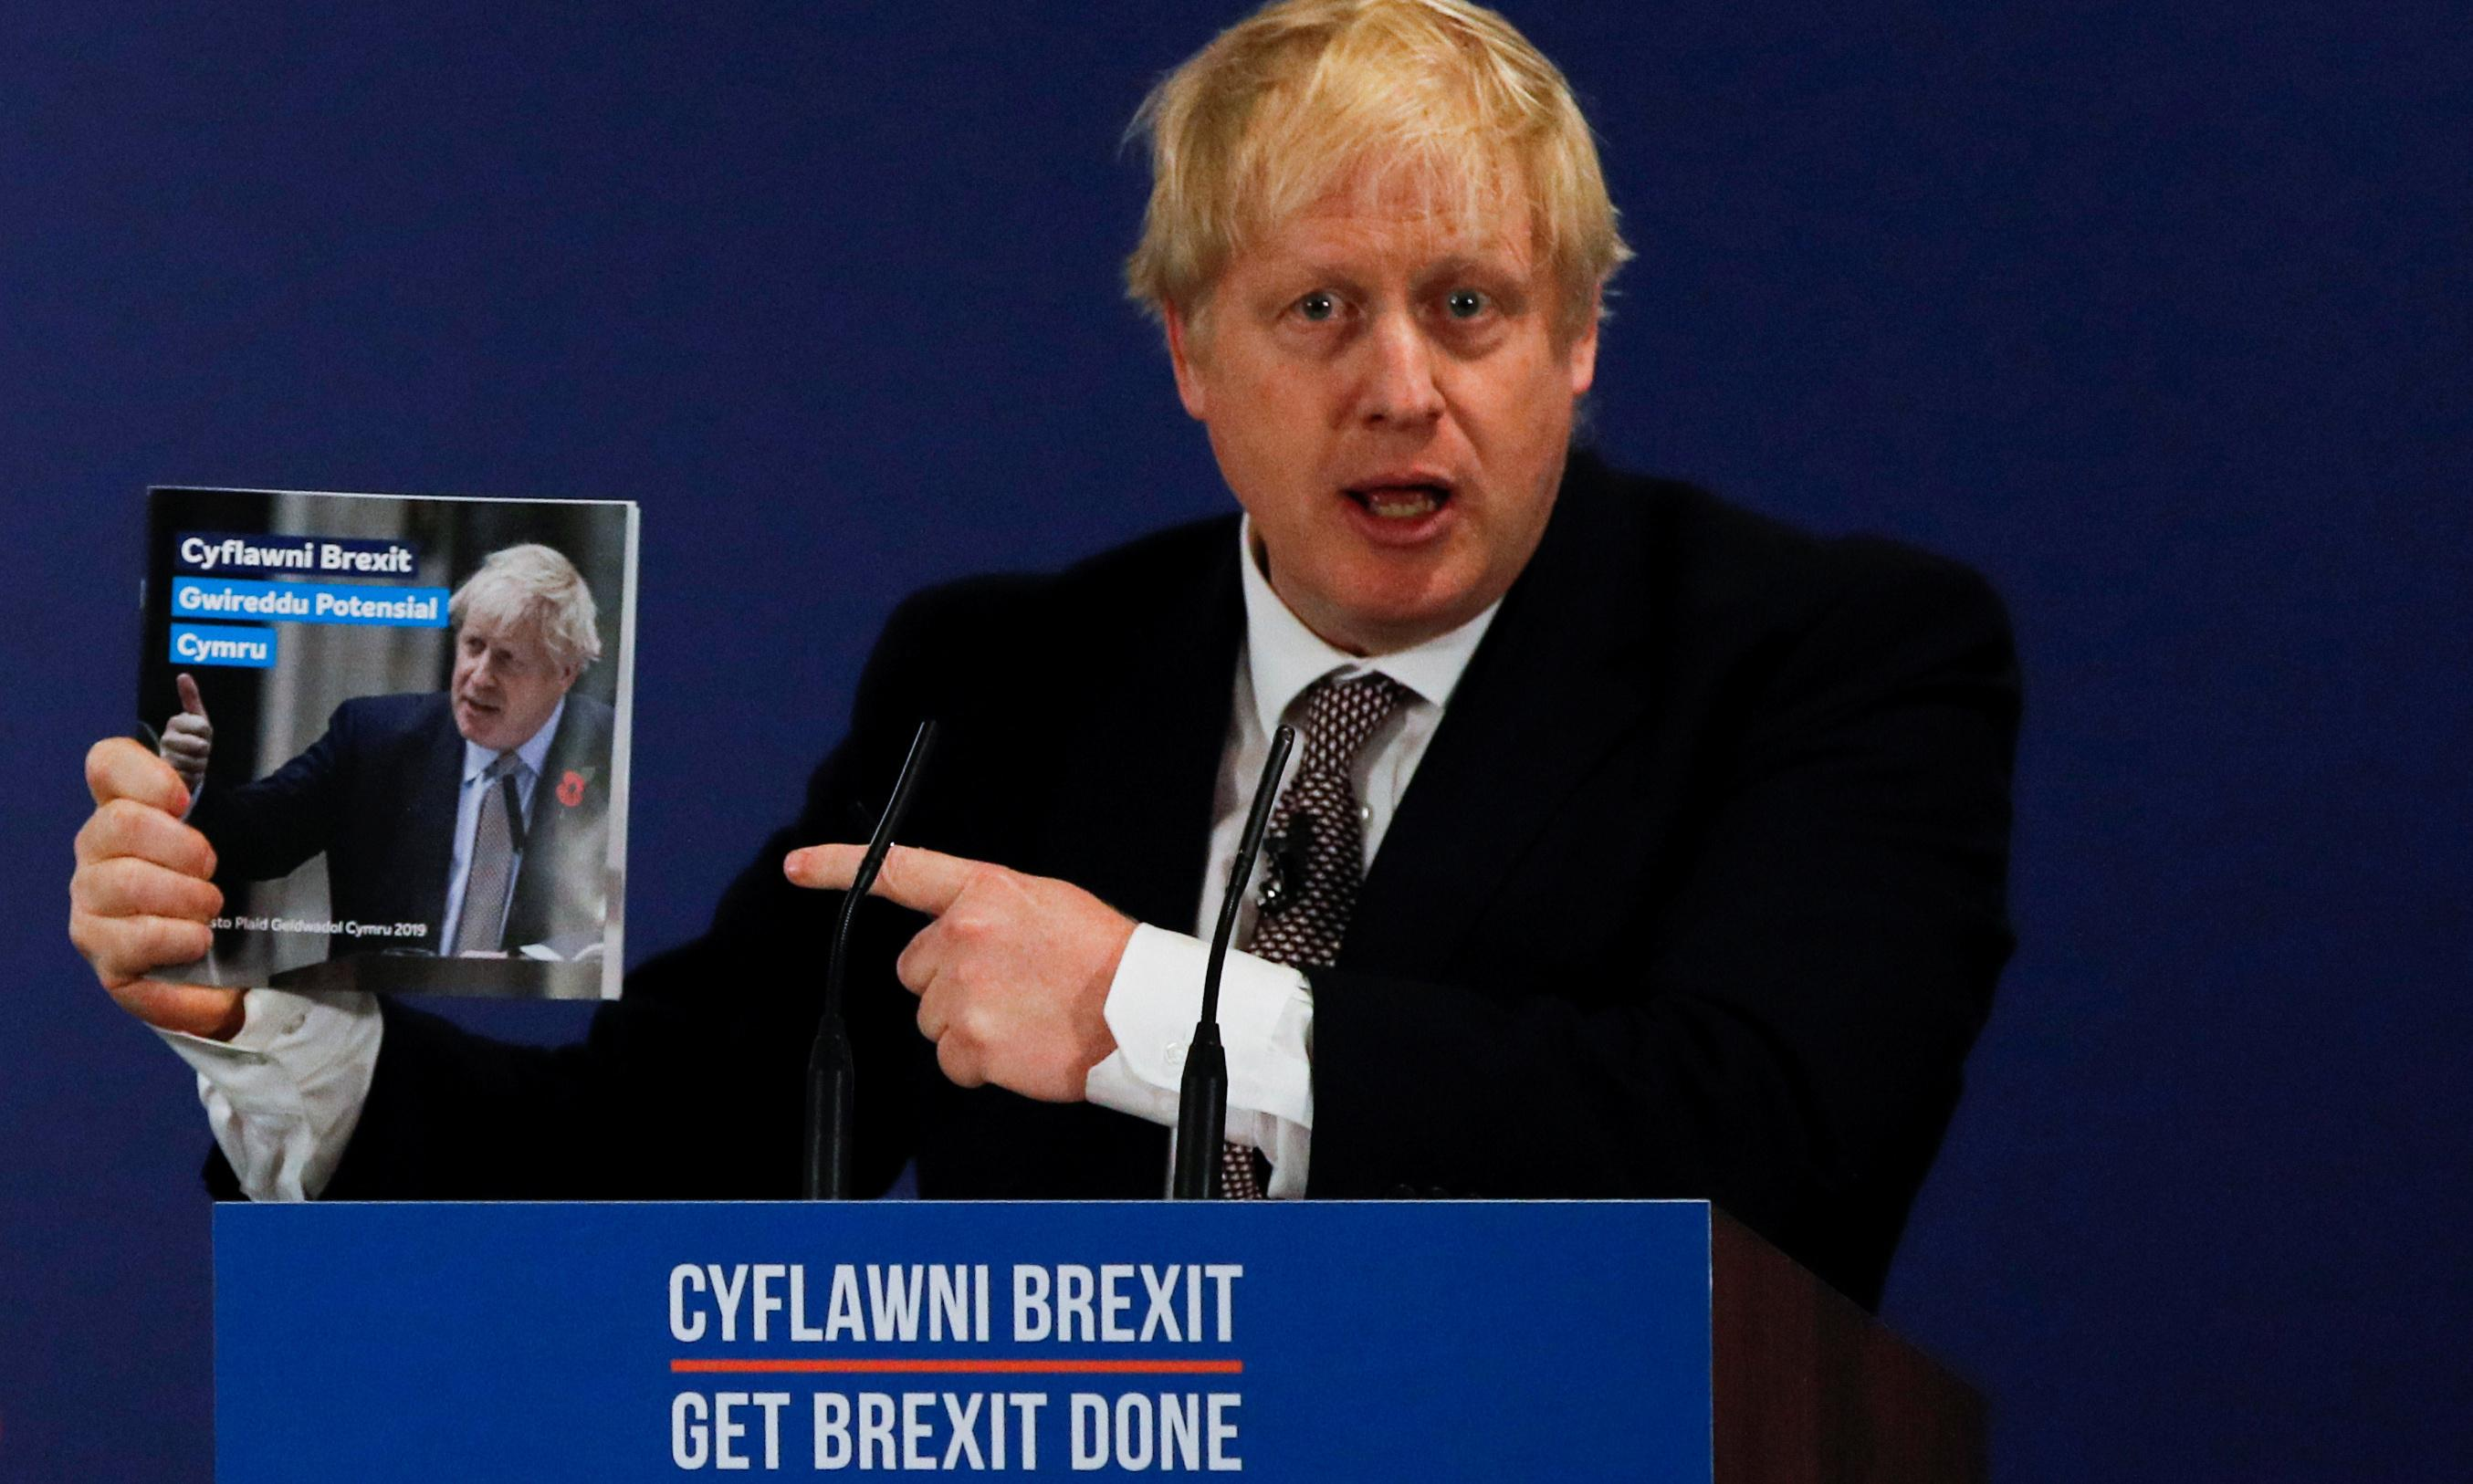 We now know the Boris Johnson blueprint: crisis, inequality and division